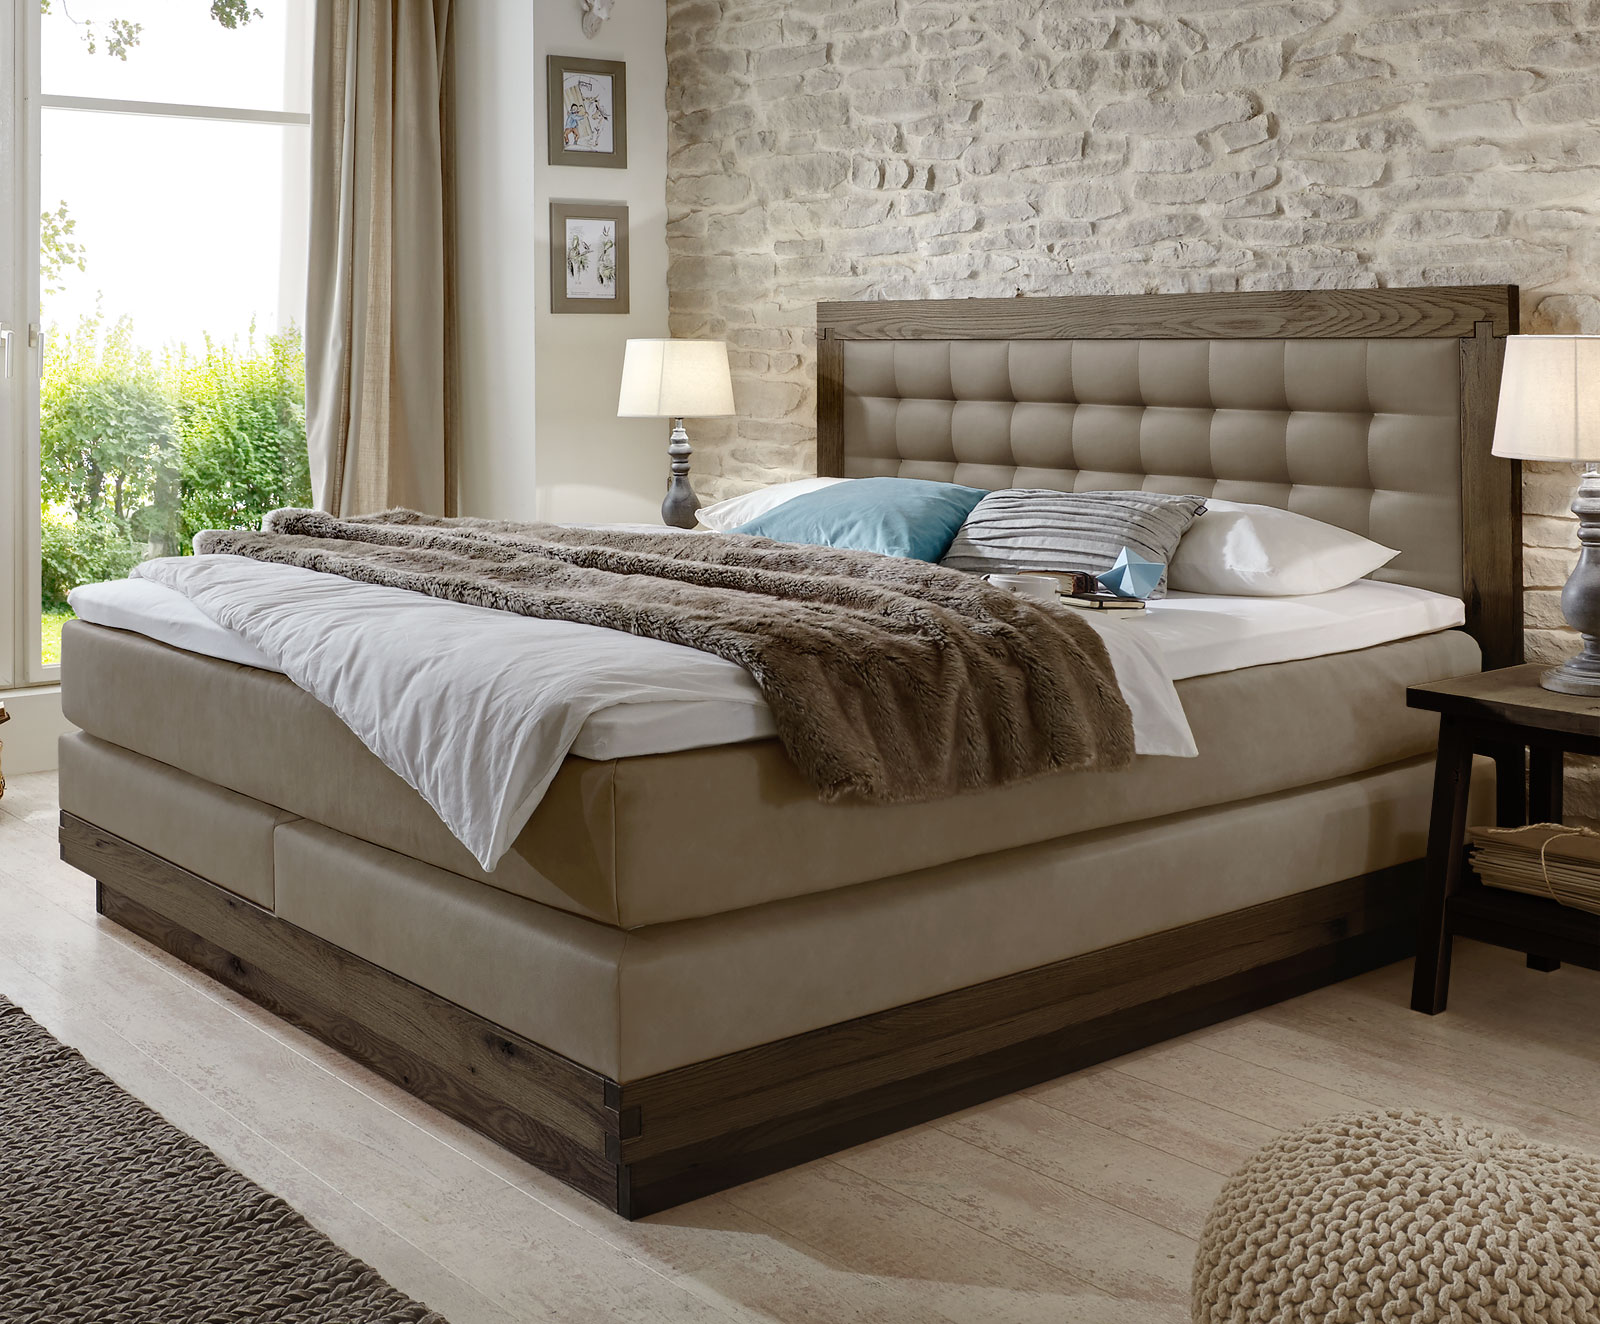 Boxspring Betten Boxspringbett Aus Massiver Wildeiche And Kunstleder Galicia